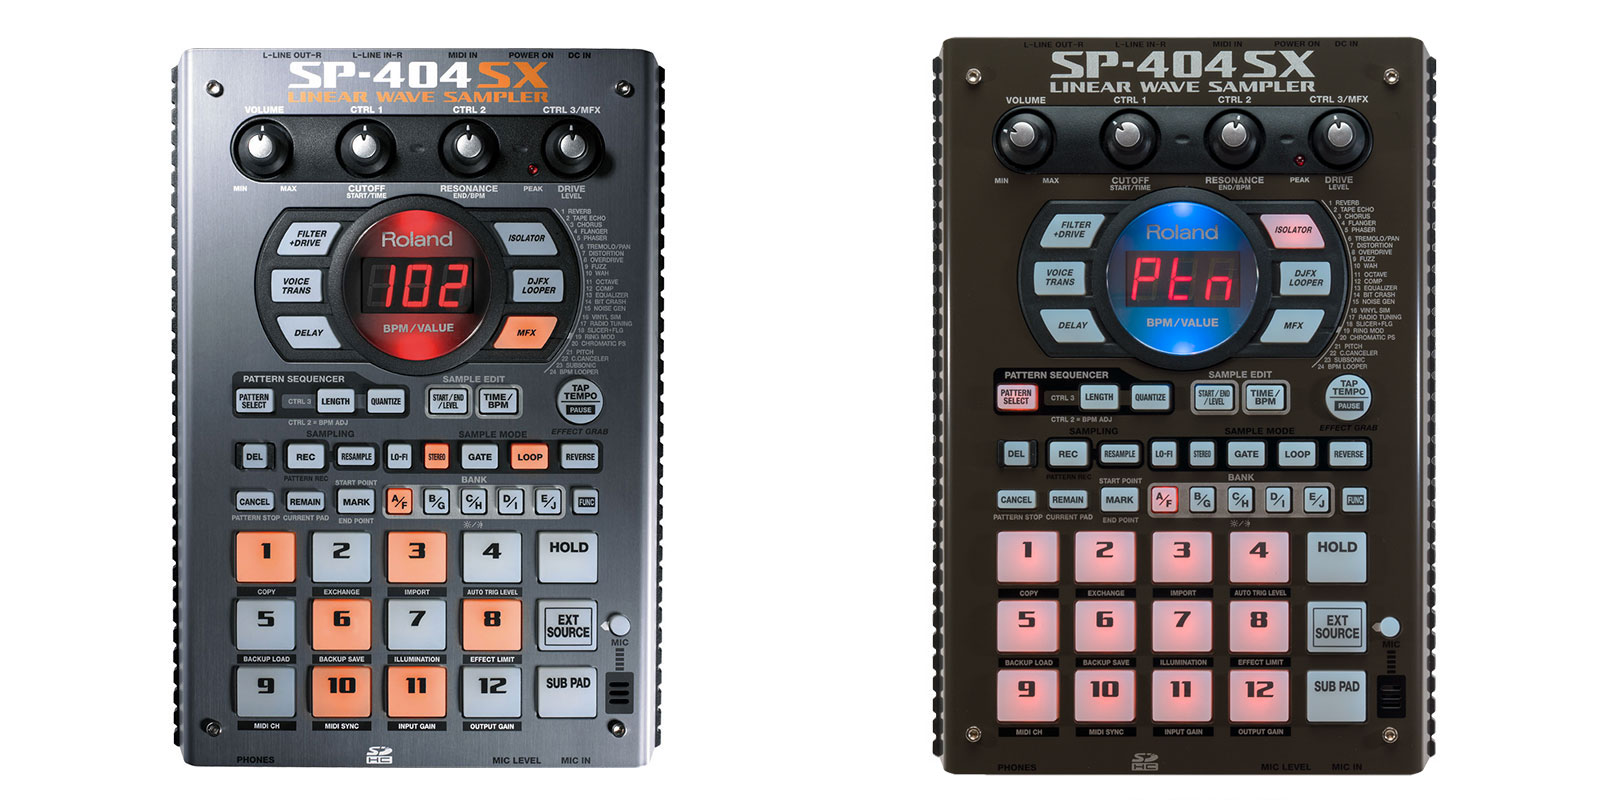 SP-404SXカラー比較